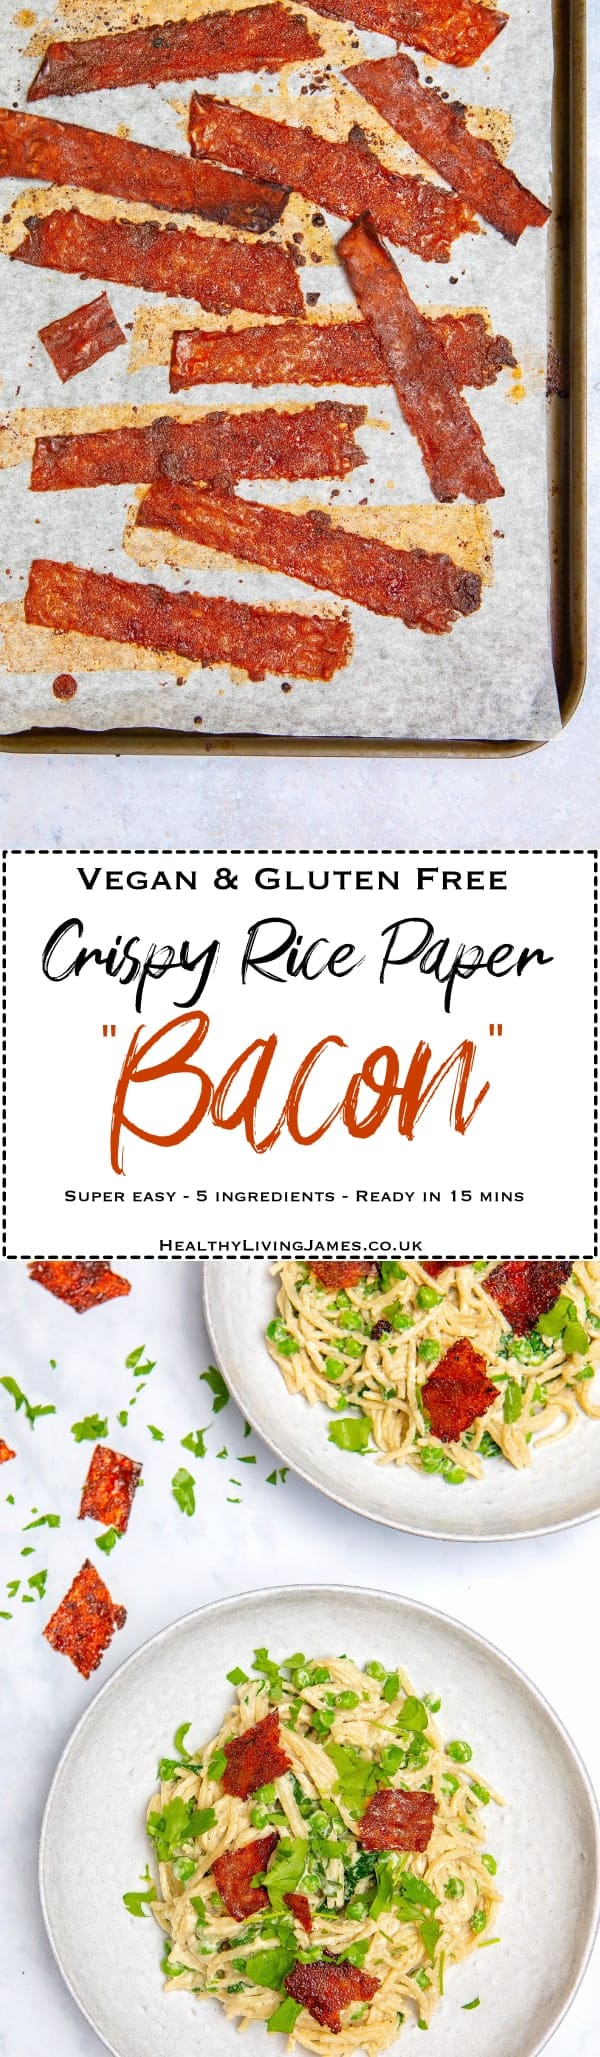 Crispy Rice Paper Bacon Pin